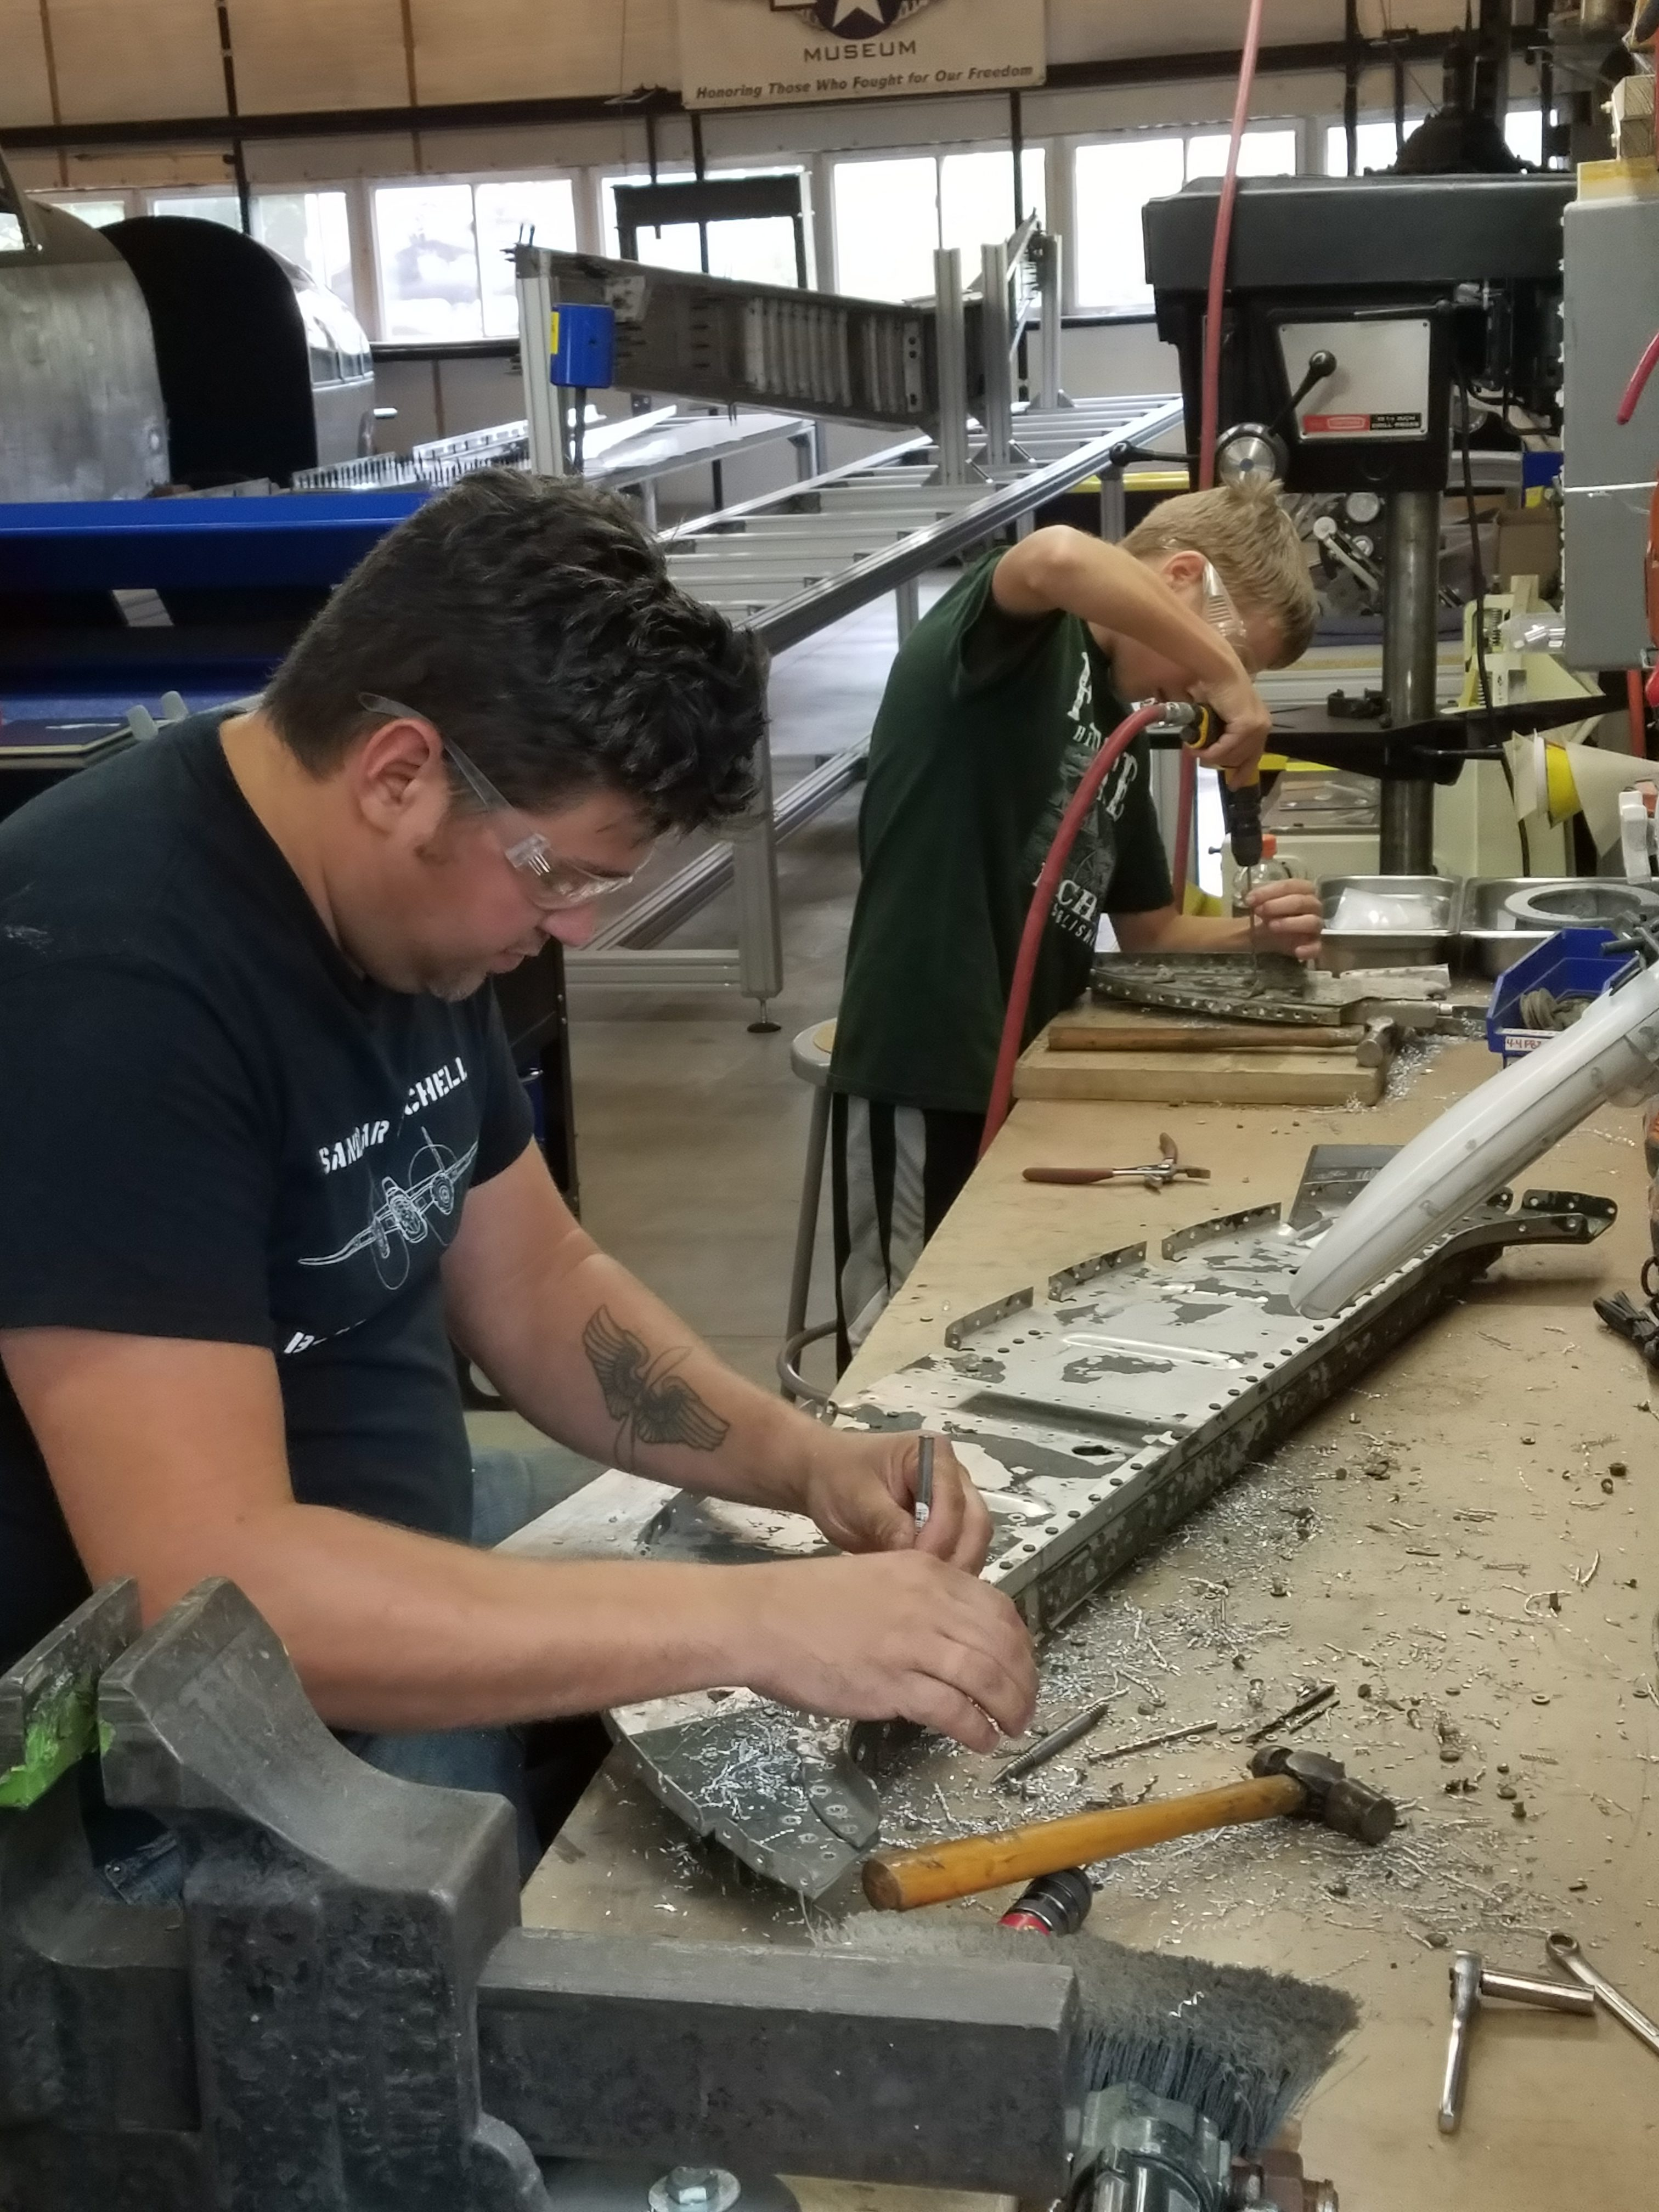 Founder Patrick Mihalek and youth Matt drilling rivets from B-25 parts.